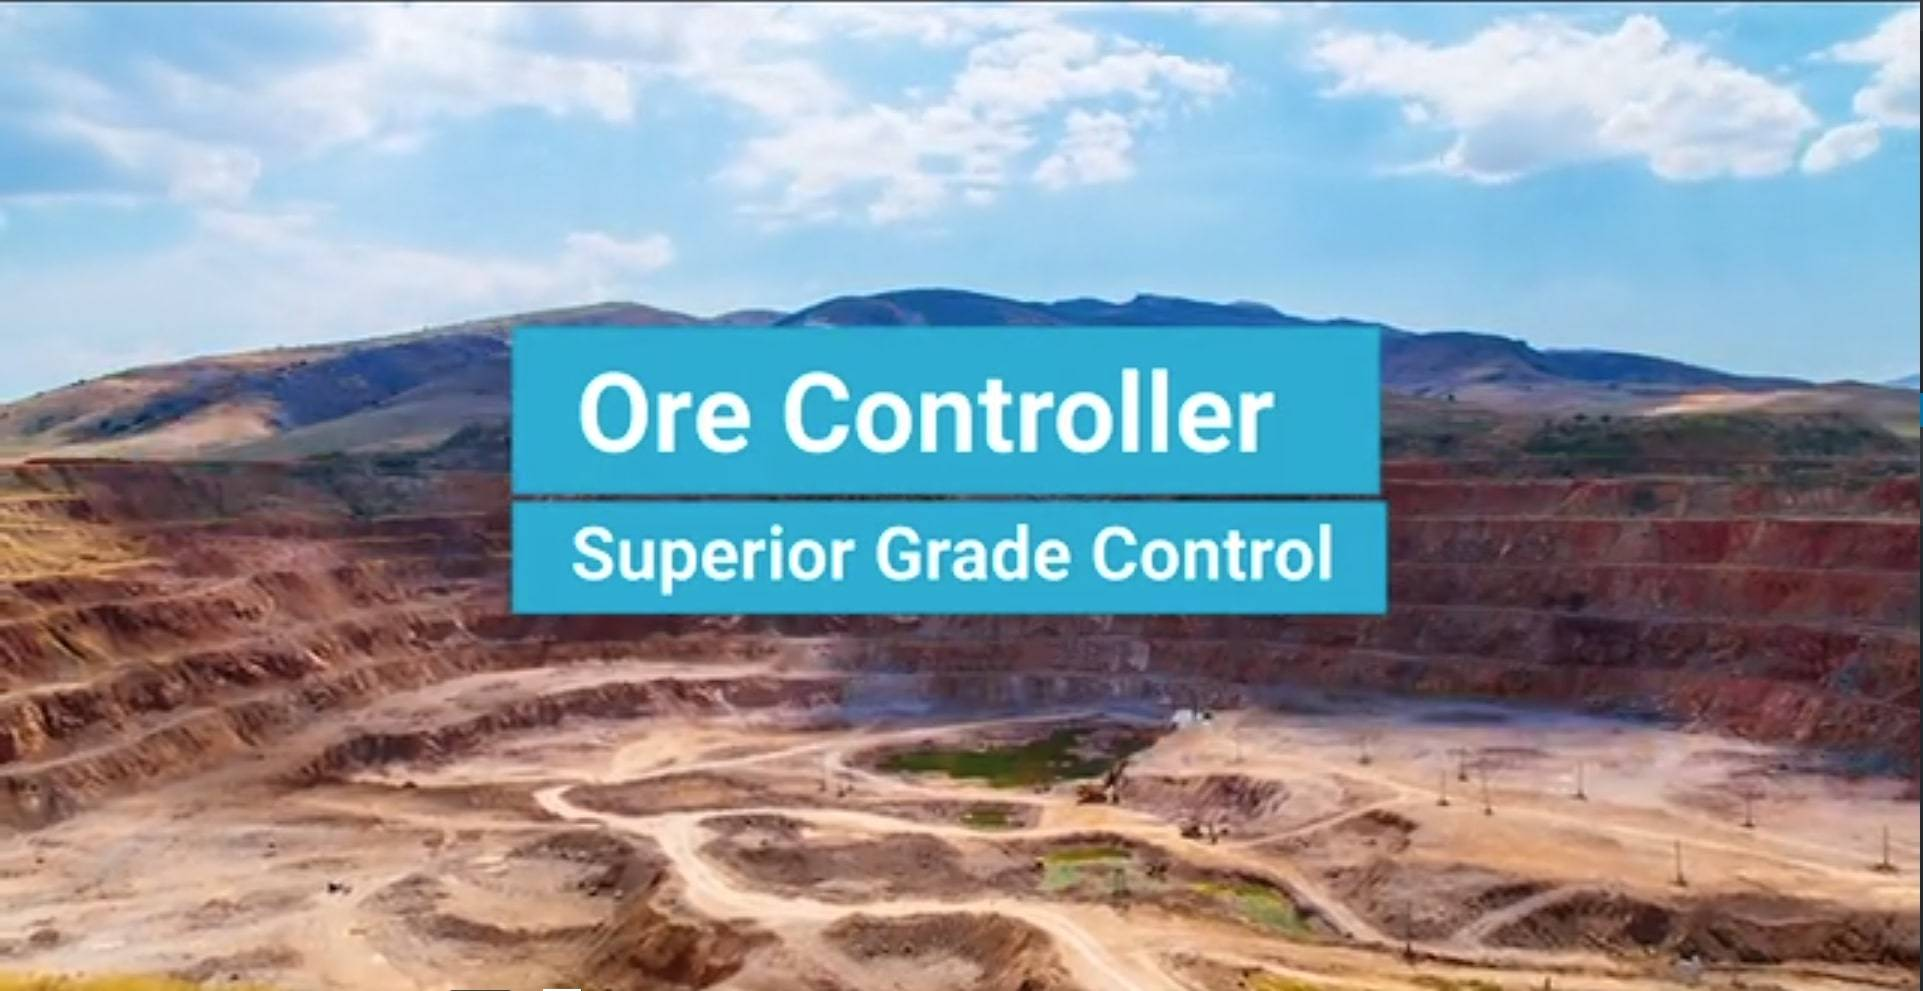 Ore-Controller-Overview-Video-Screenshot-Cropped-1-1